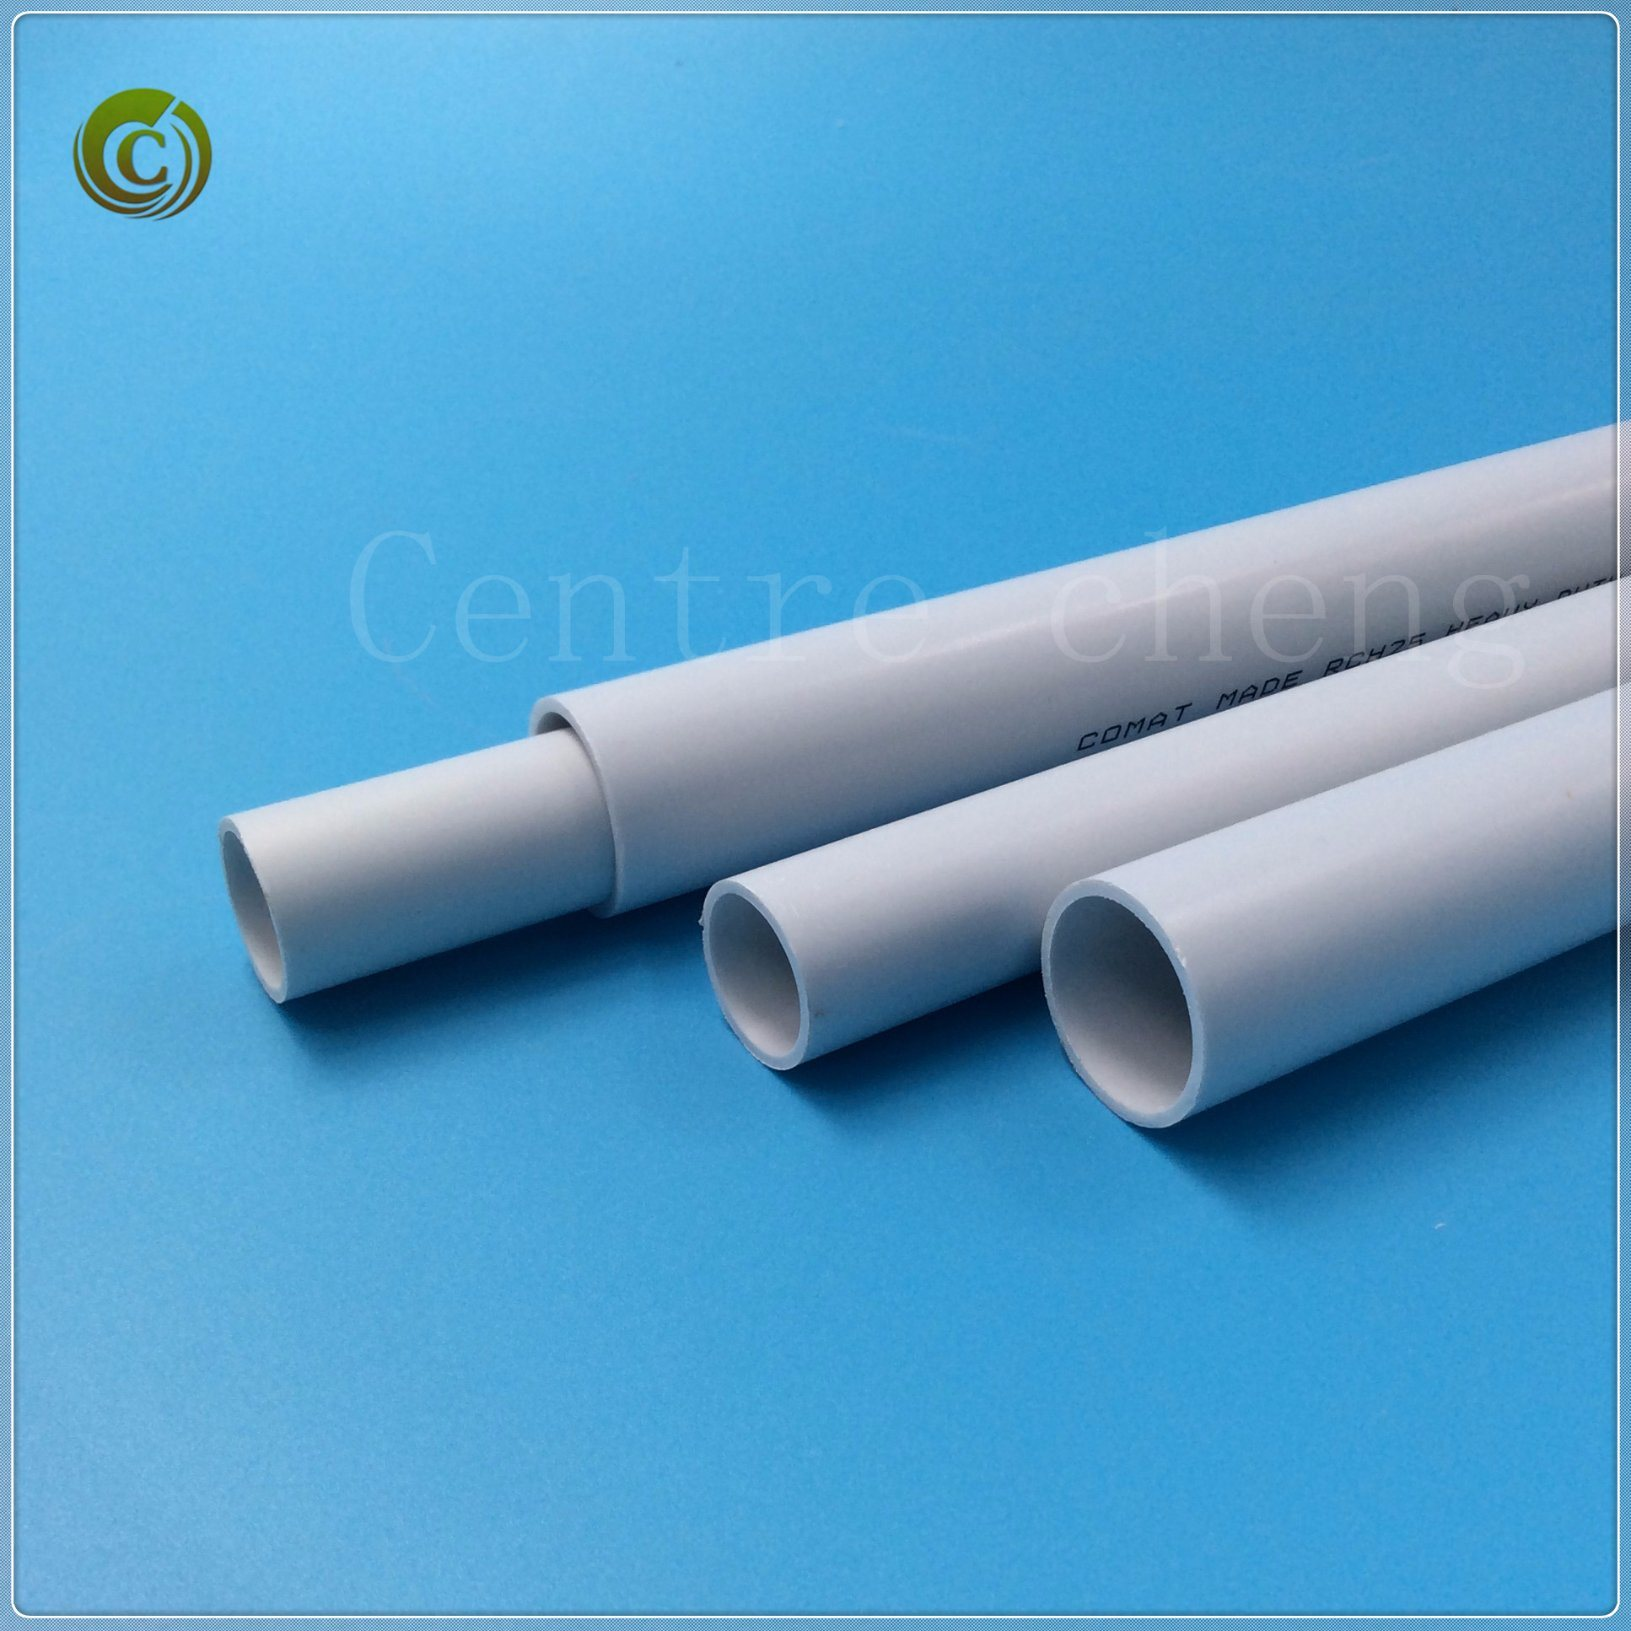 China 2018 16mmaa Cable Duct Electric Wiring Conduit Pipe Pvc In Plastic White Color